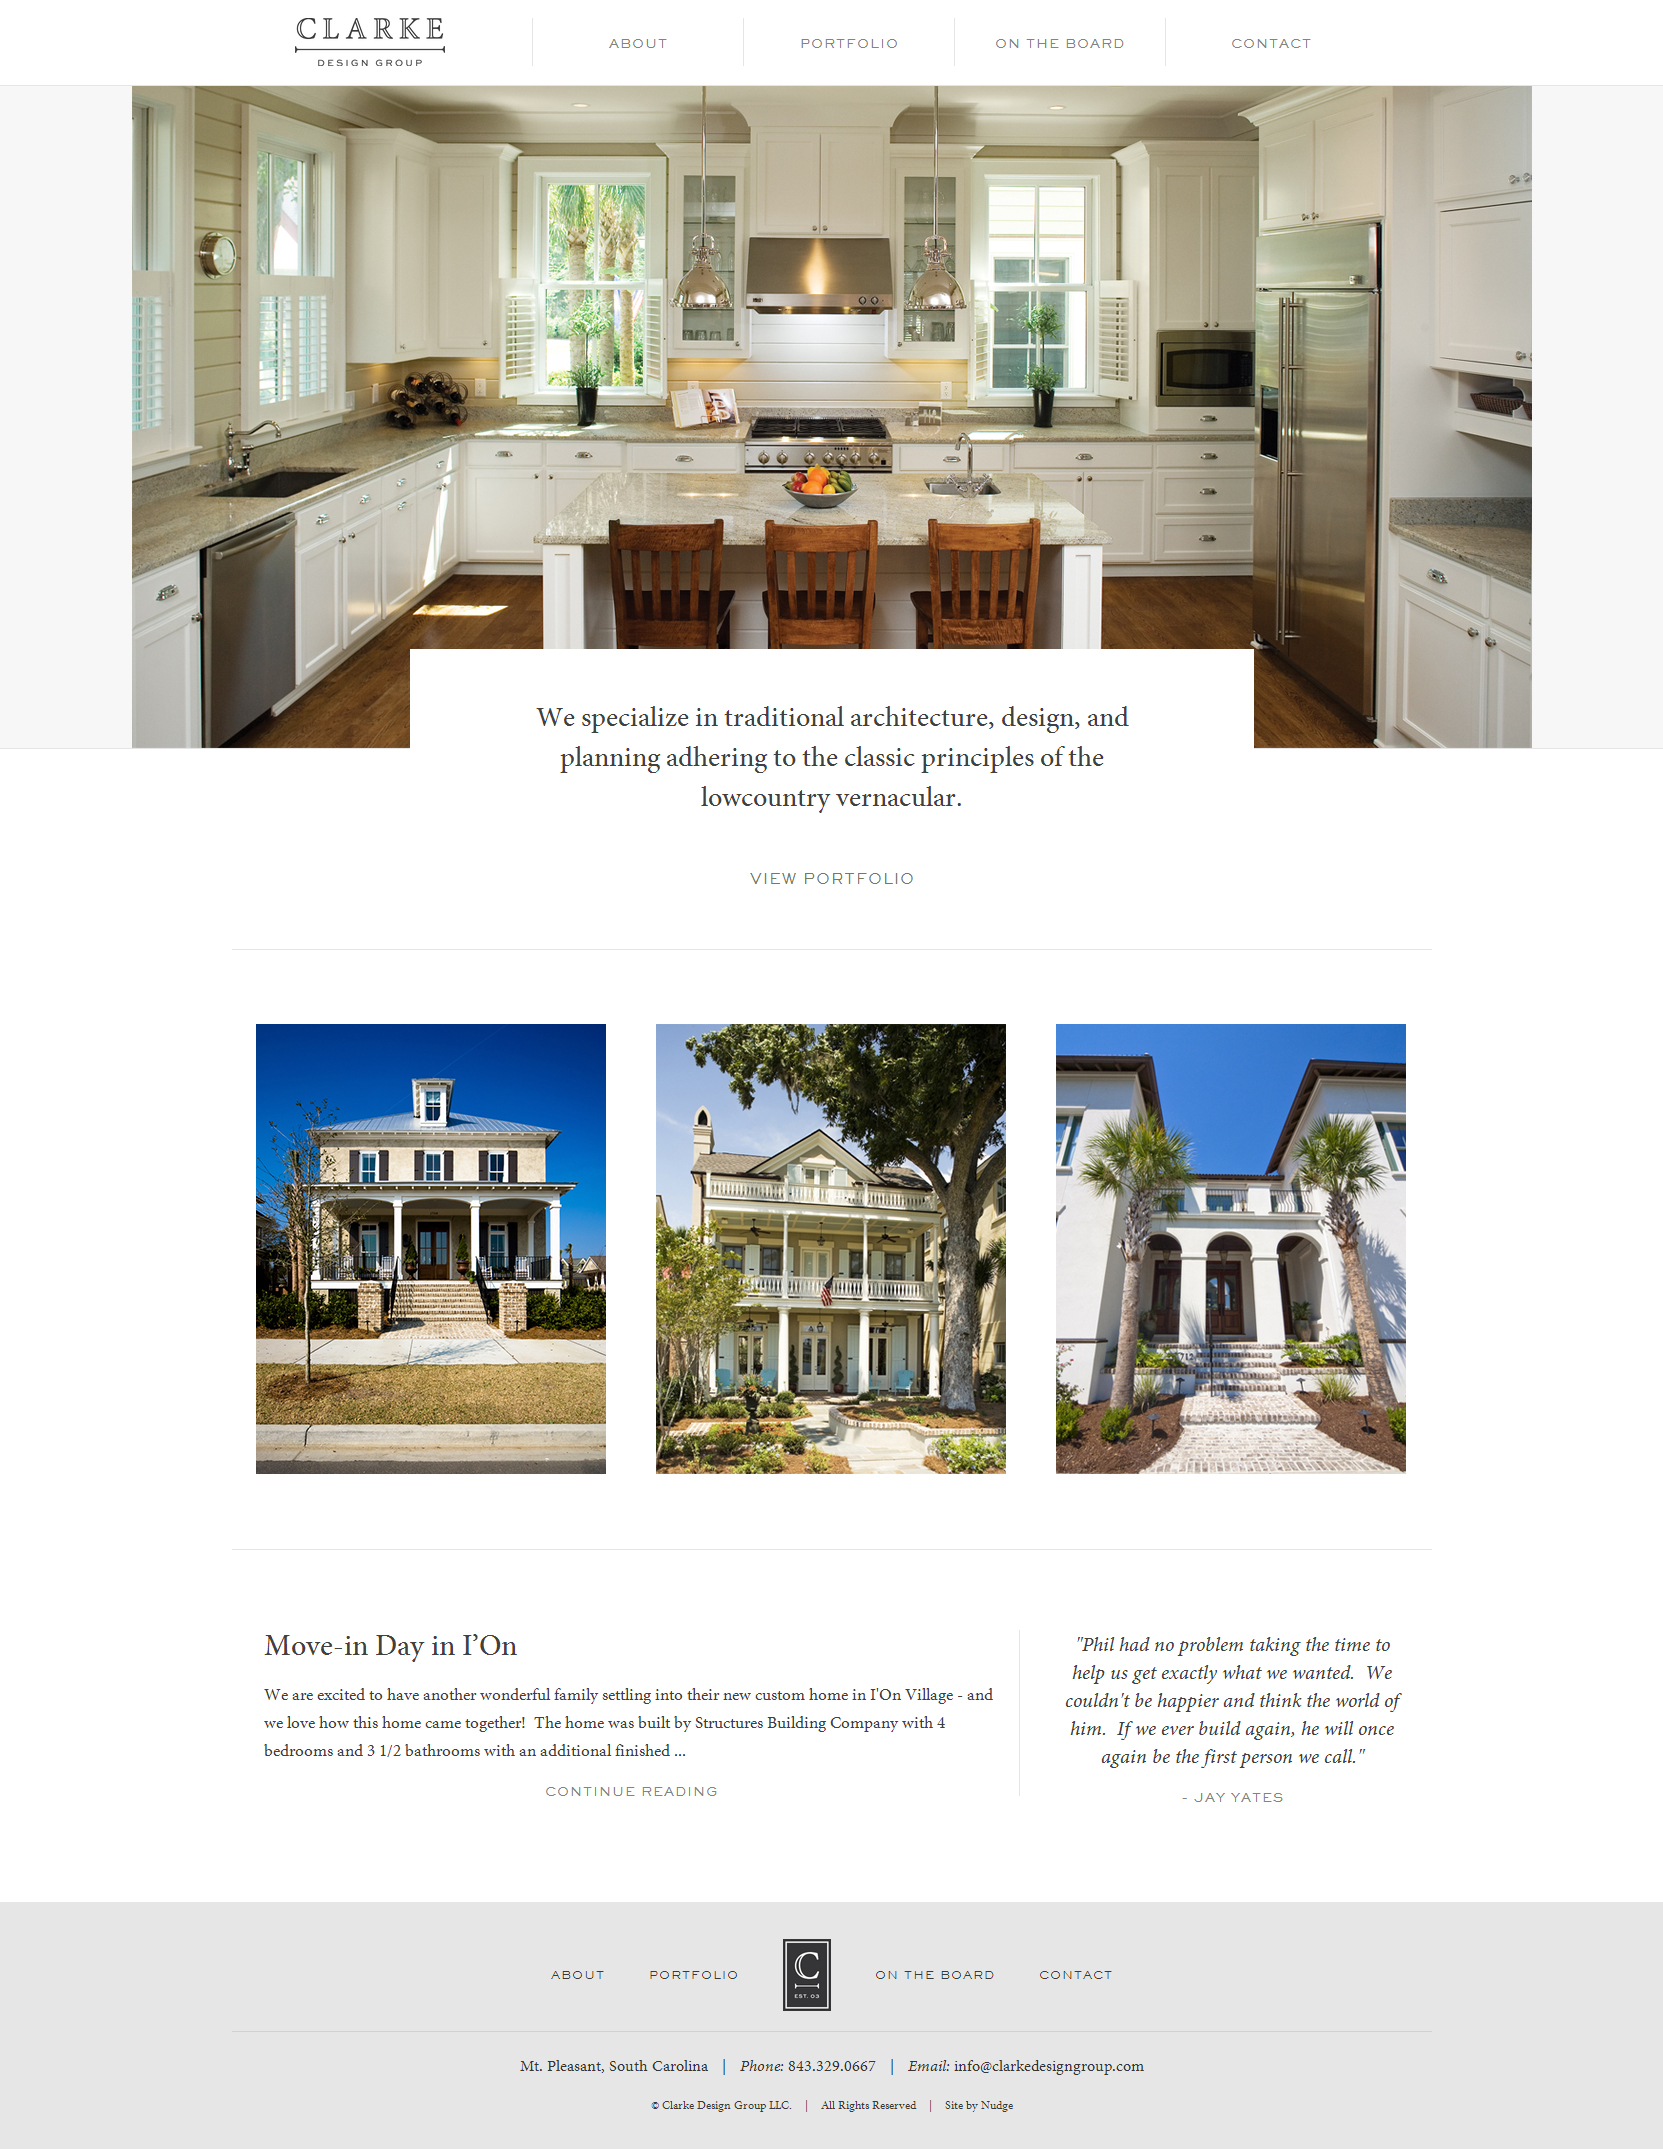 Clarke Design Group - Clean Architecture Website For Your Inspiration